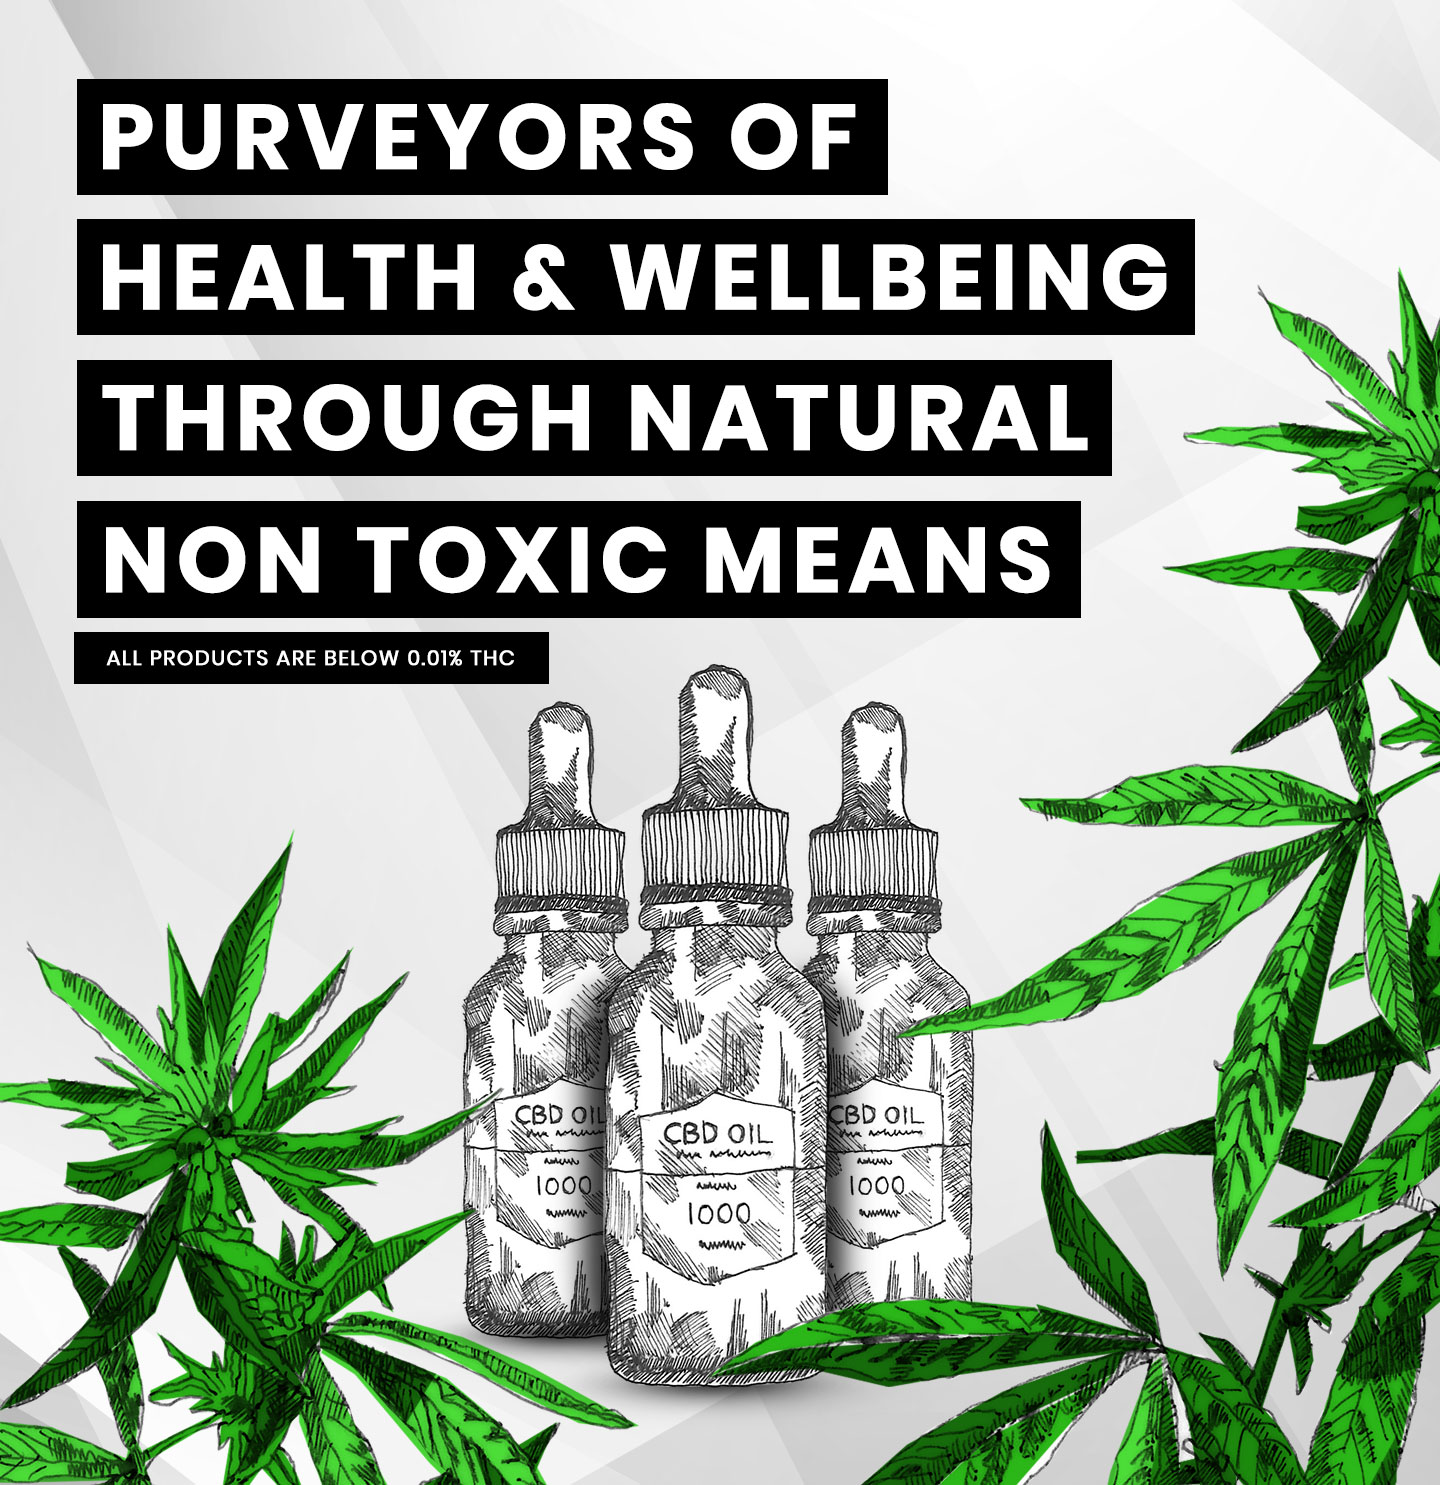 Purveyors of Health & Wellbeing Through Natural Non Toxic Means